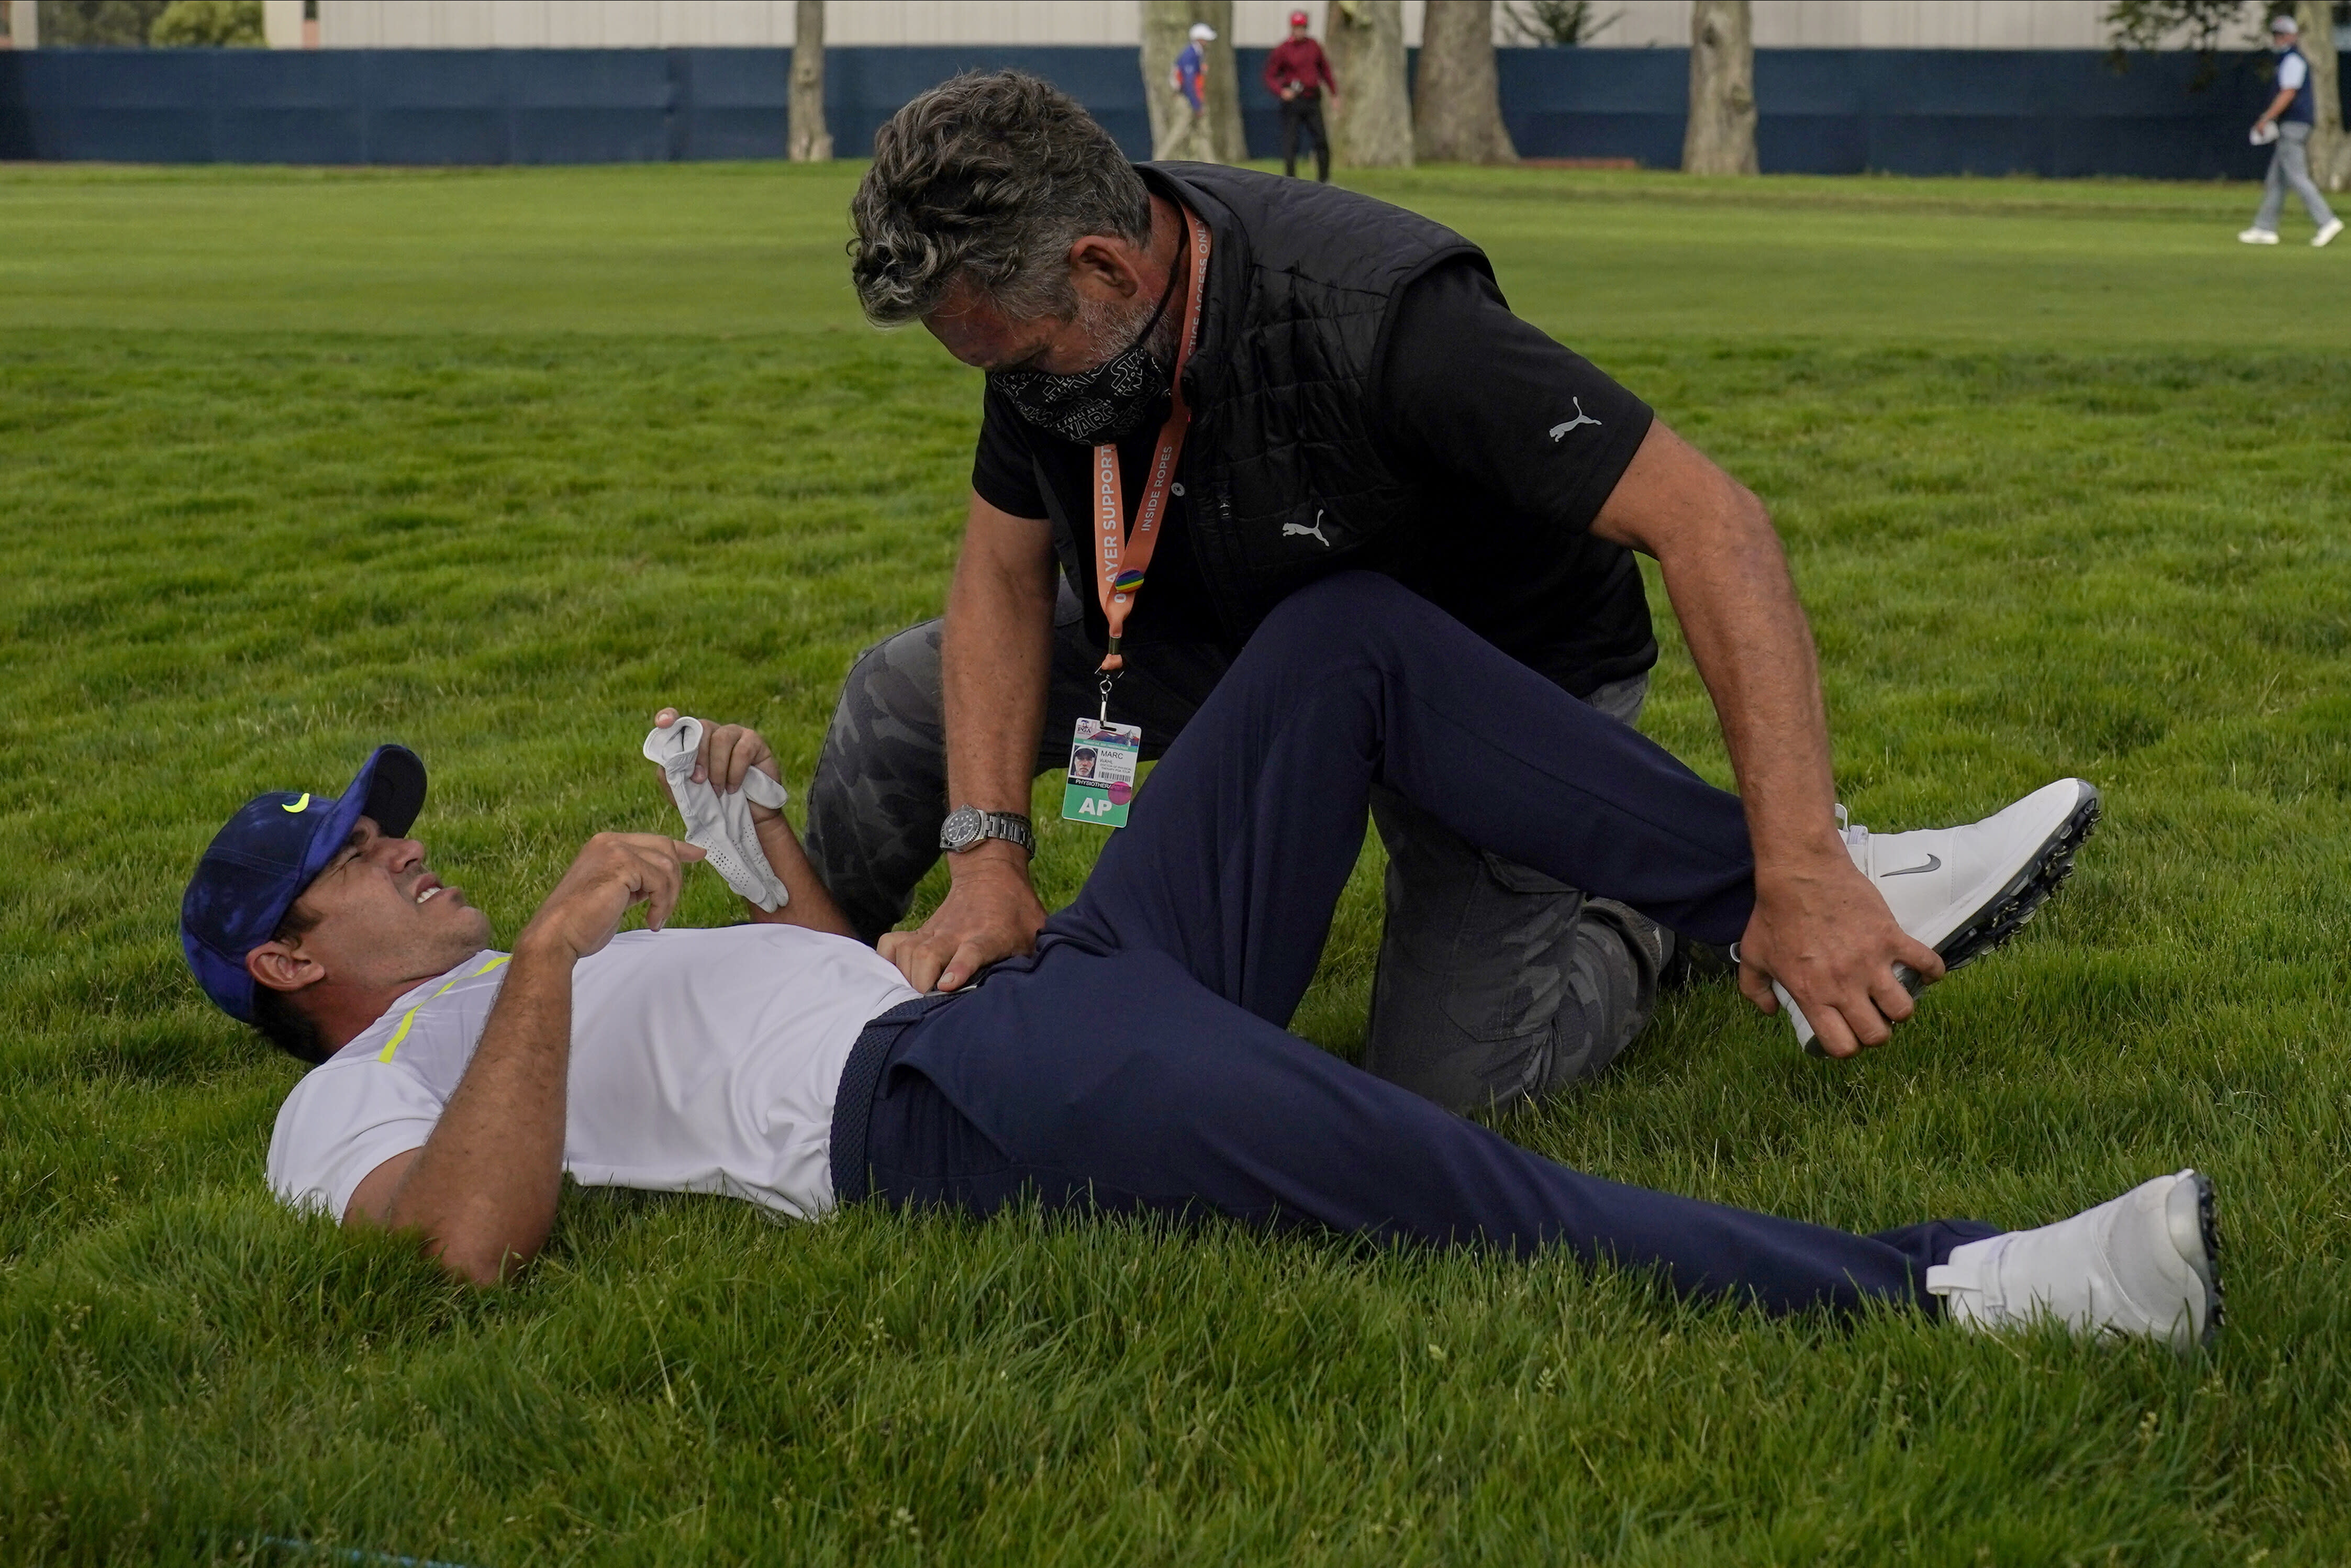 Brooks Koepka gets treated for an injury on the 12th hole during the second round of the PGA Championship golf tournament at TPC Harding Park Friday, Aug. 7, 2020, in San Francisco. (AP Photo/Jeff Chiu)